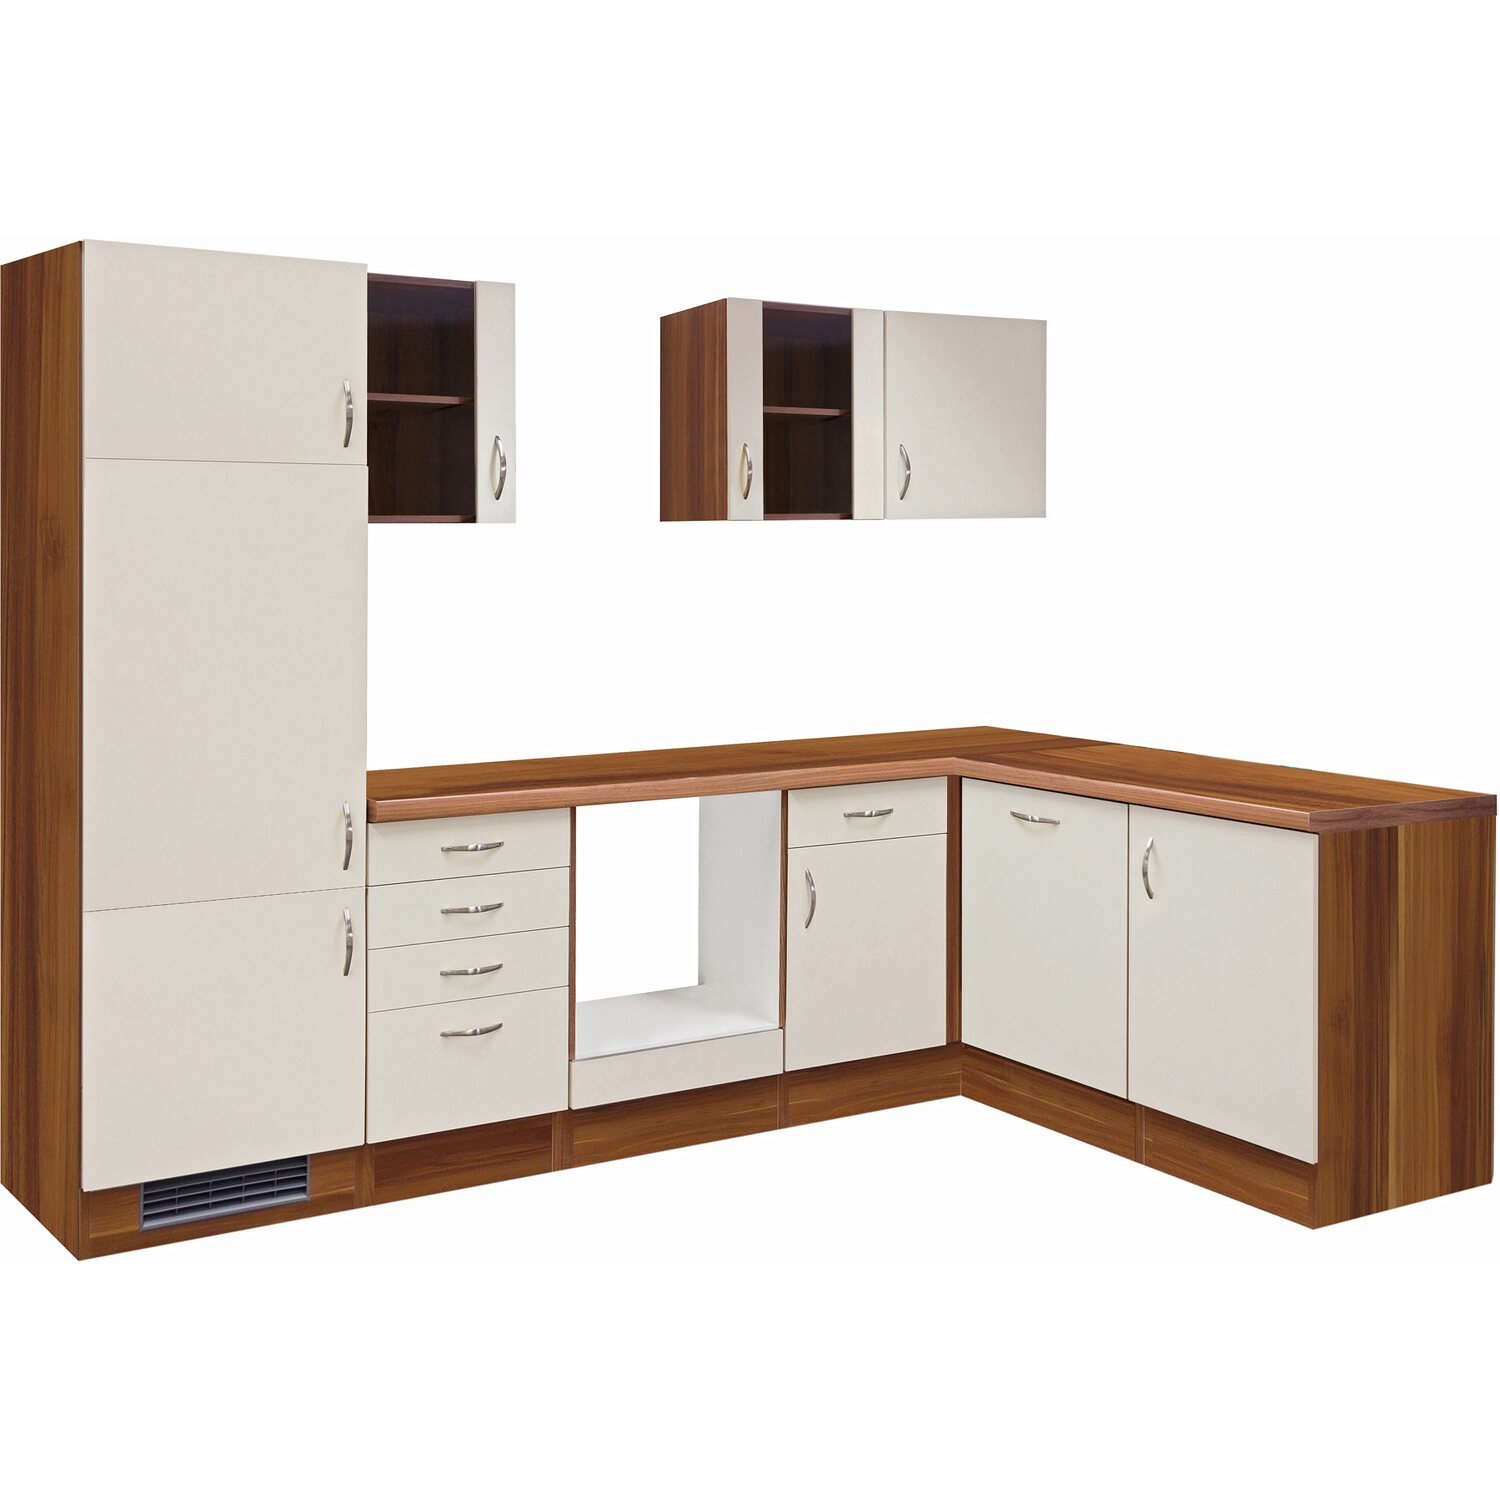 flex well exclusiv winkelk che sienna 280 cm ohne e ger te. Black Bedroom Furniture Sets. Home Design Ideas